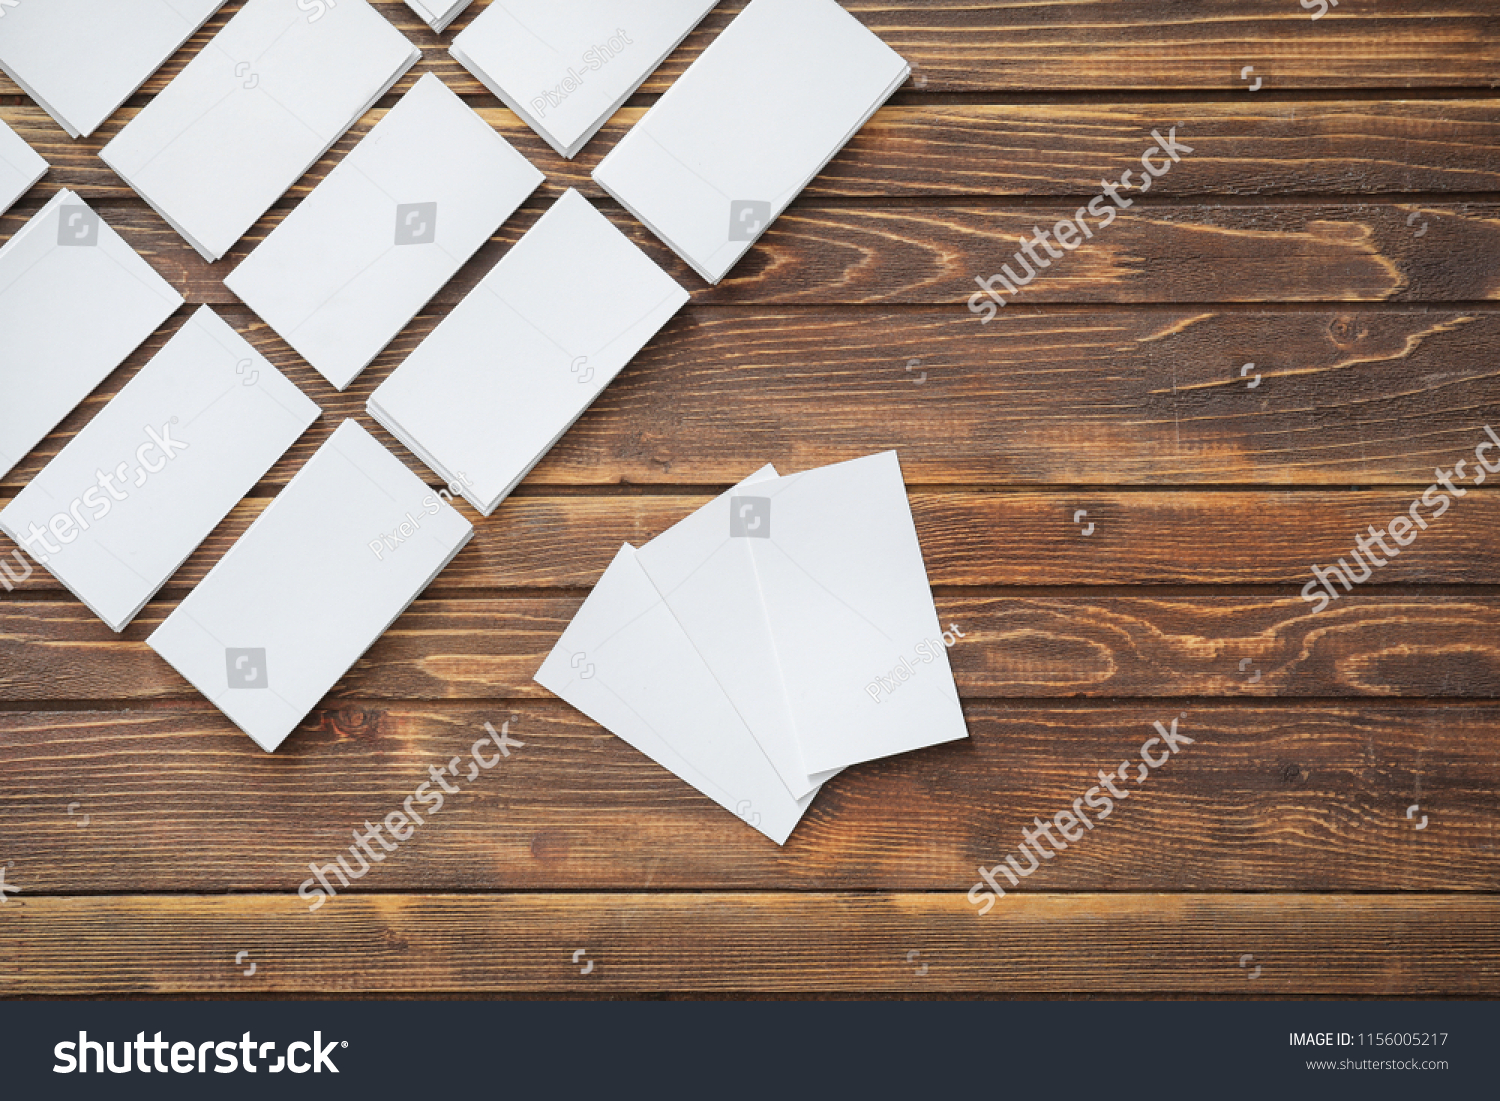 Blank Business Cards On Wooden Background Stock Photo Edit Now ...